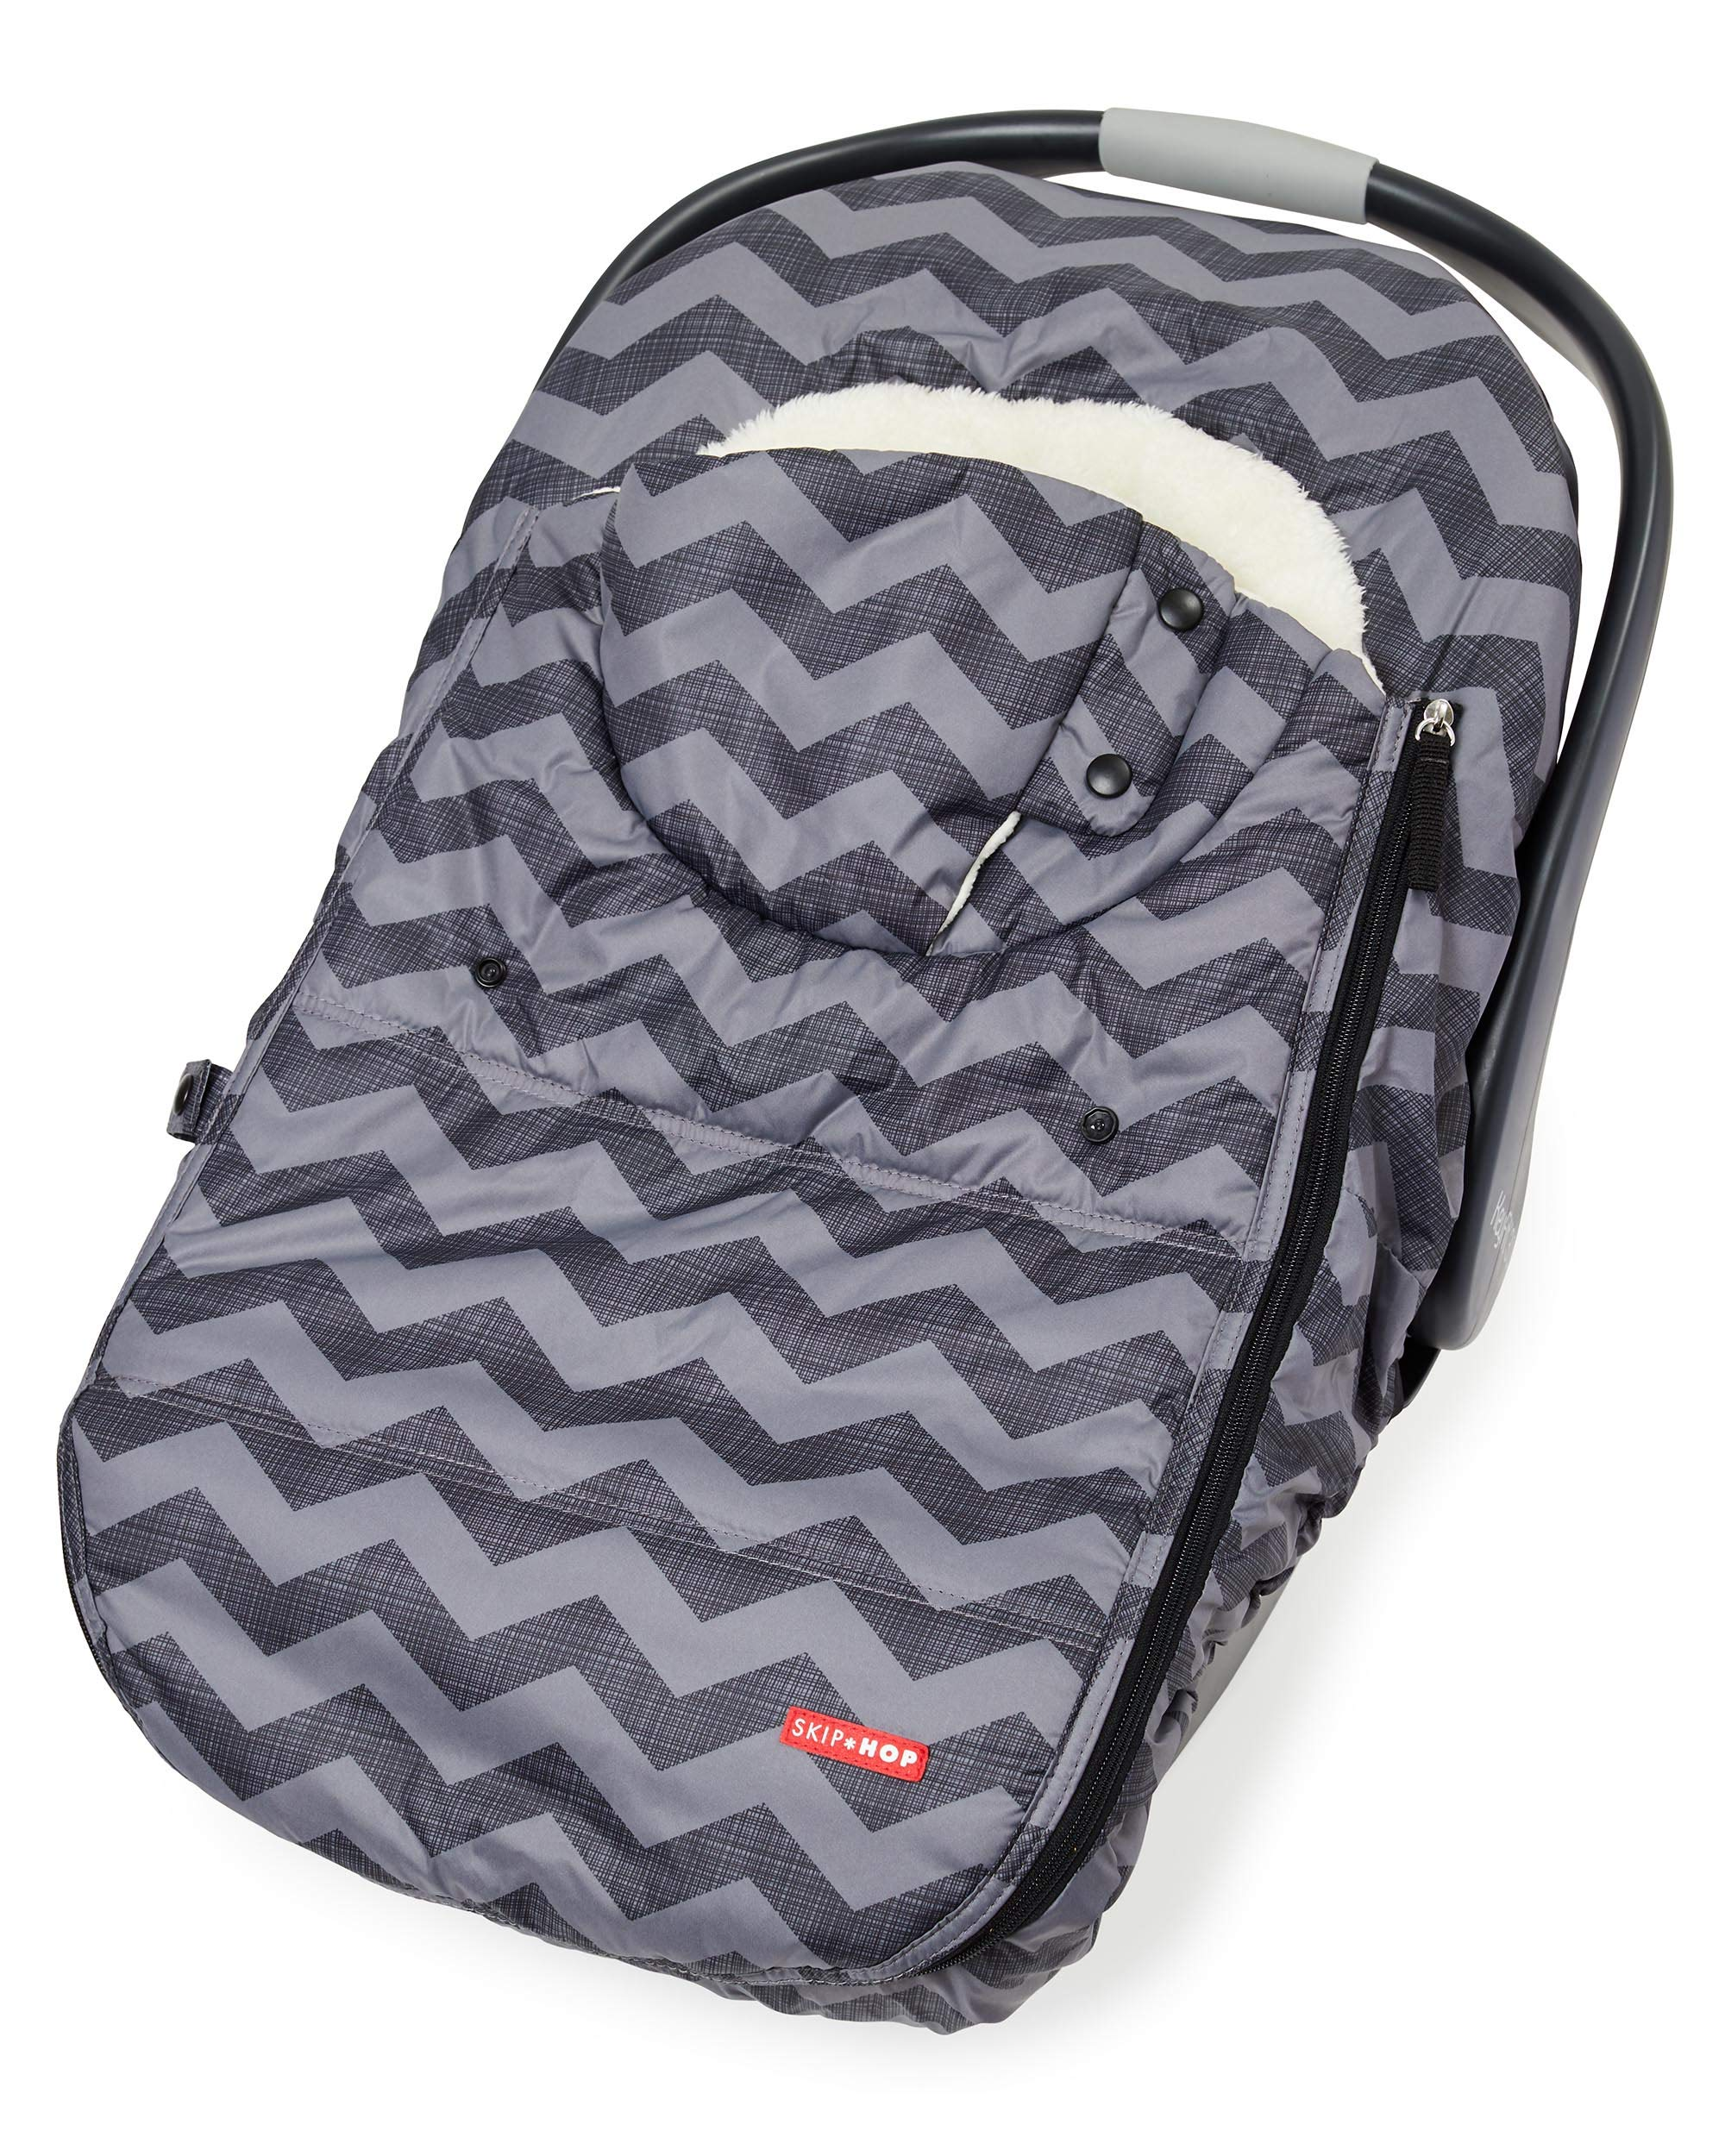 Skip Hop Stroll & Go Infant & Toddler Automotive Car Seat Cover Bunting Accessories, Universal Fit, Tonal Chevron, Black Chevron by Skip Hop (Image #5)